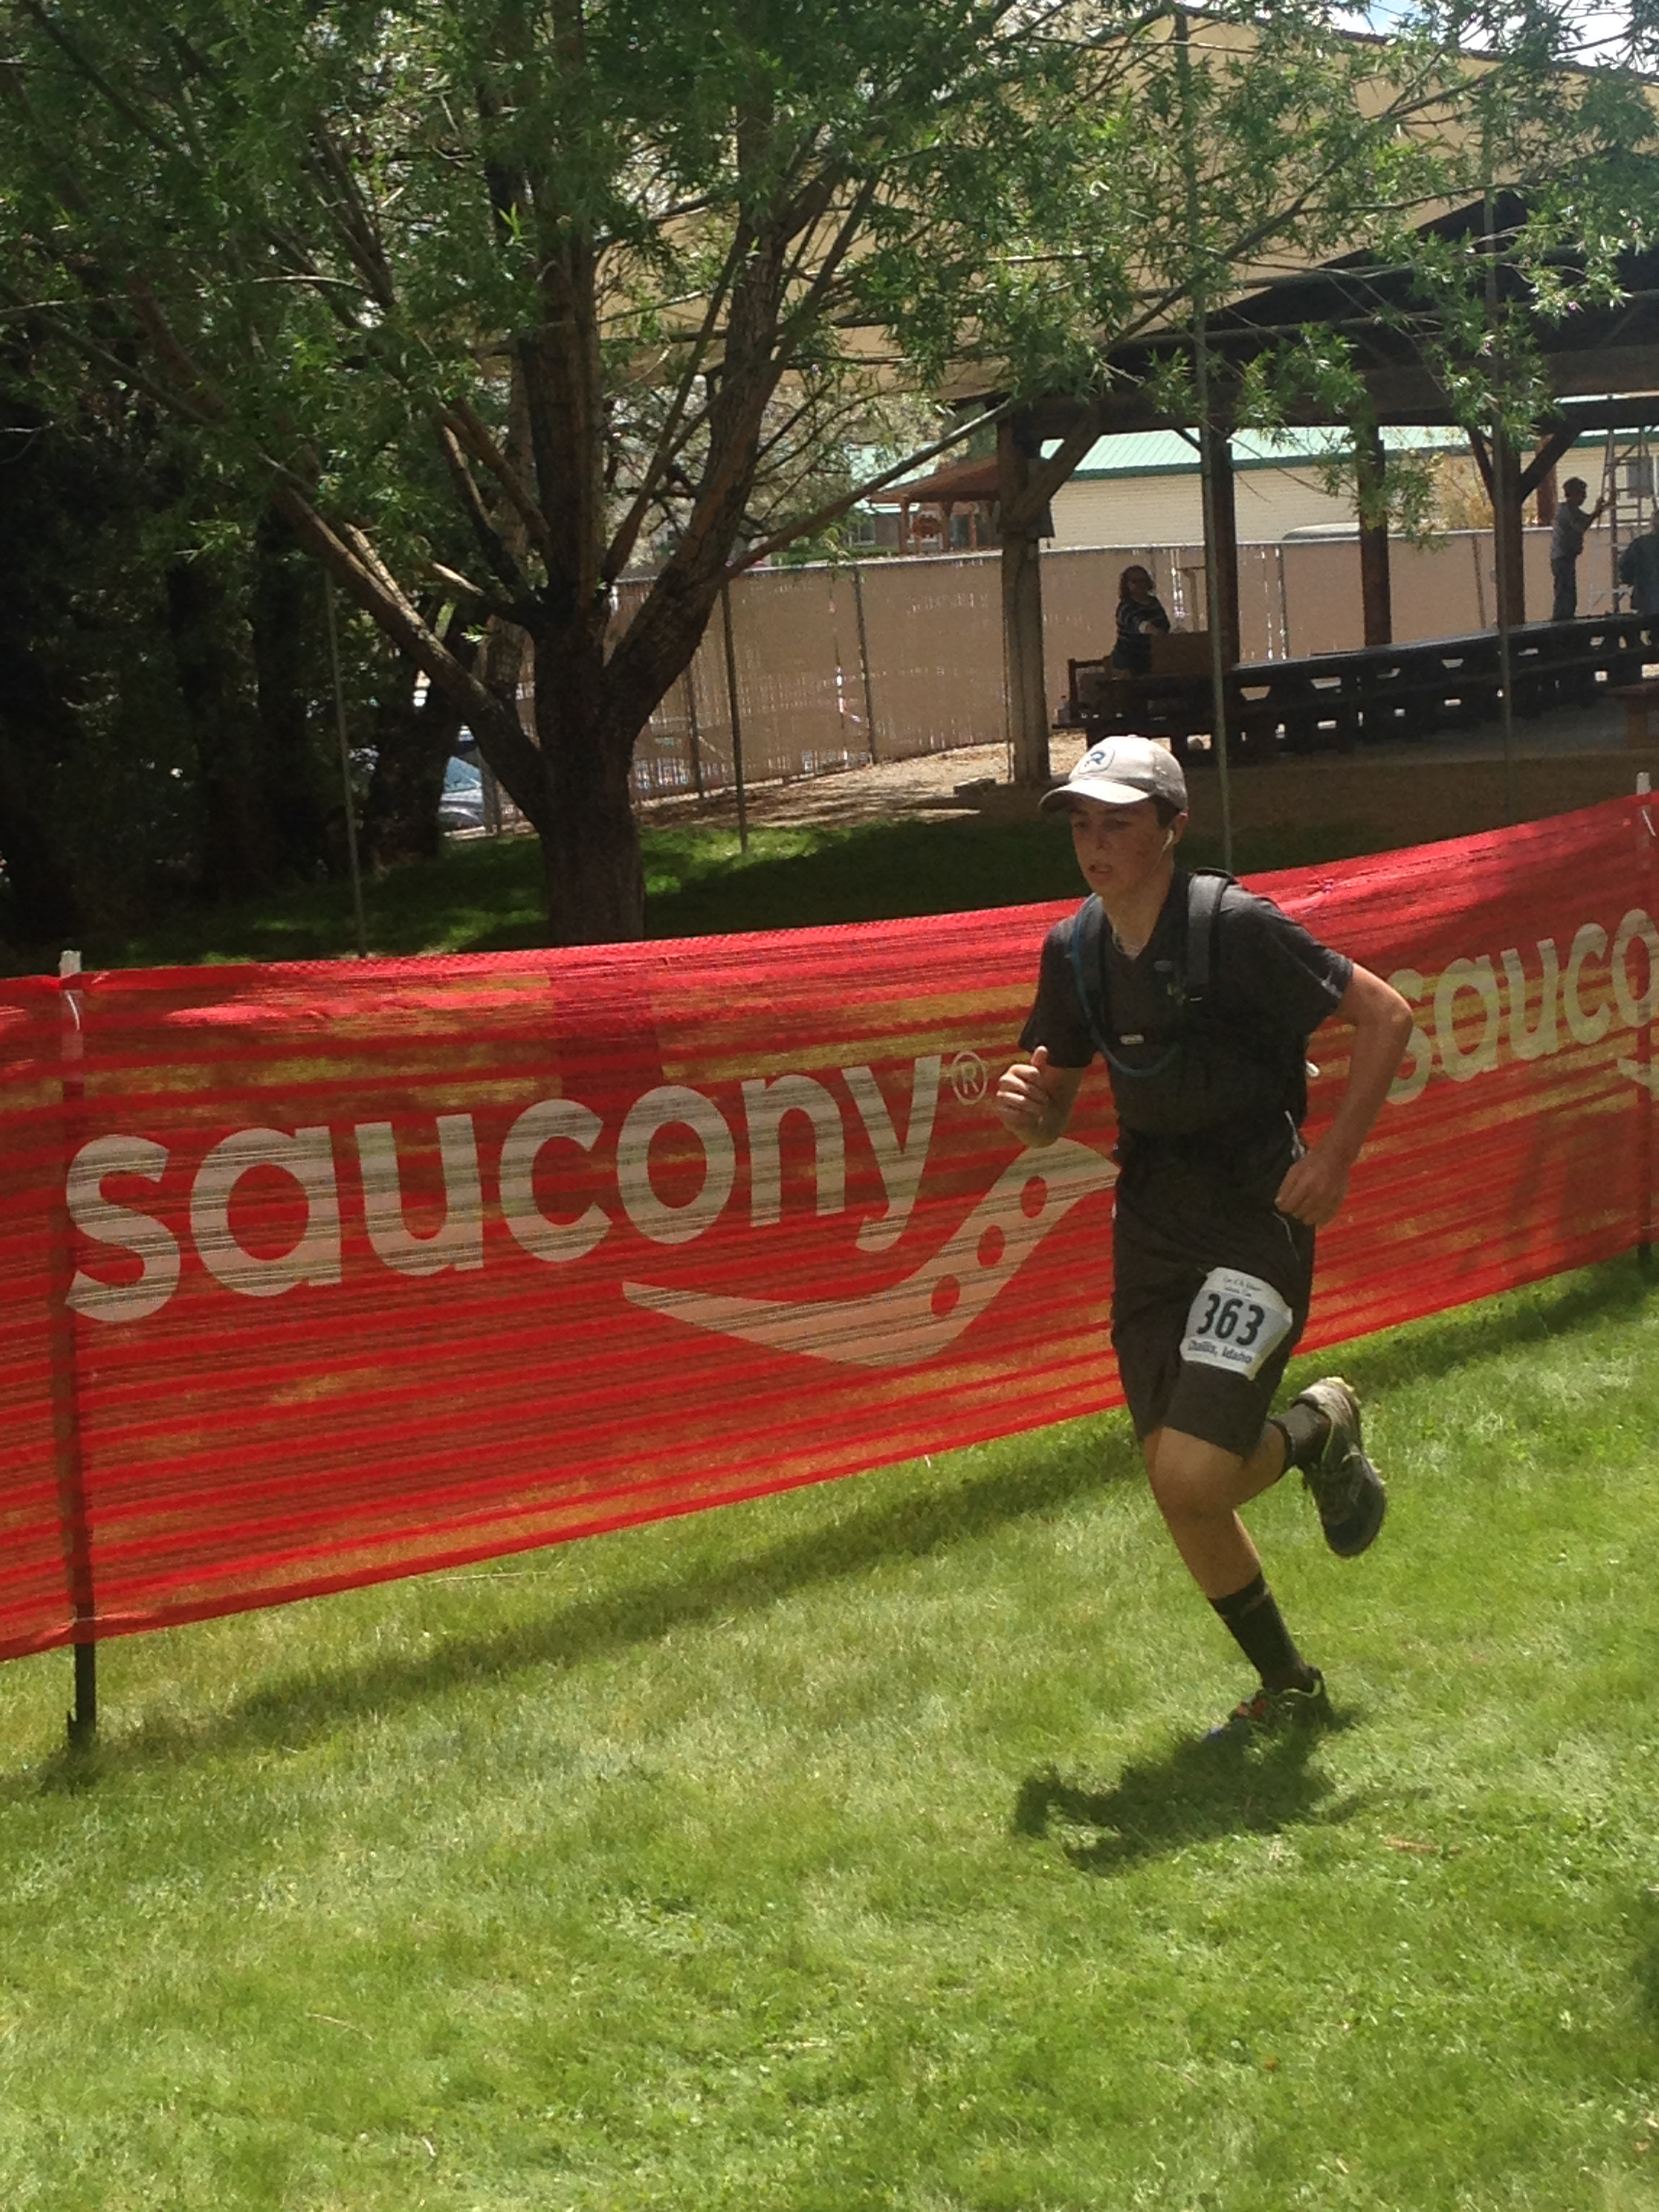 Paxton Ingram running on the finale stretch before the finish line.